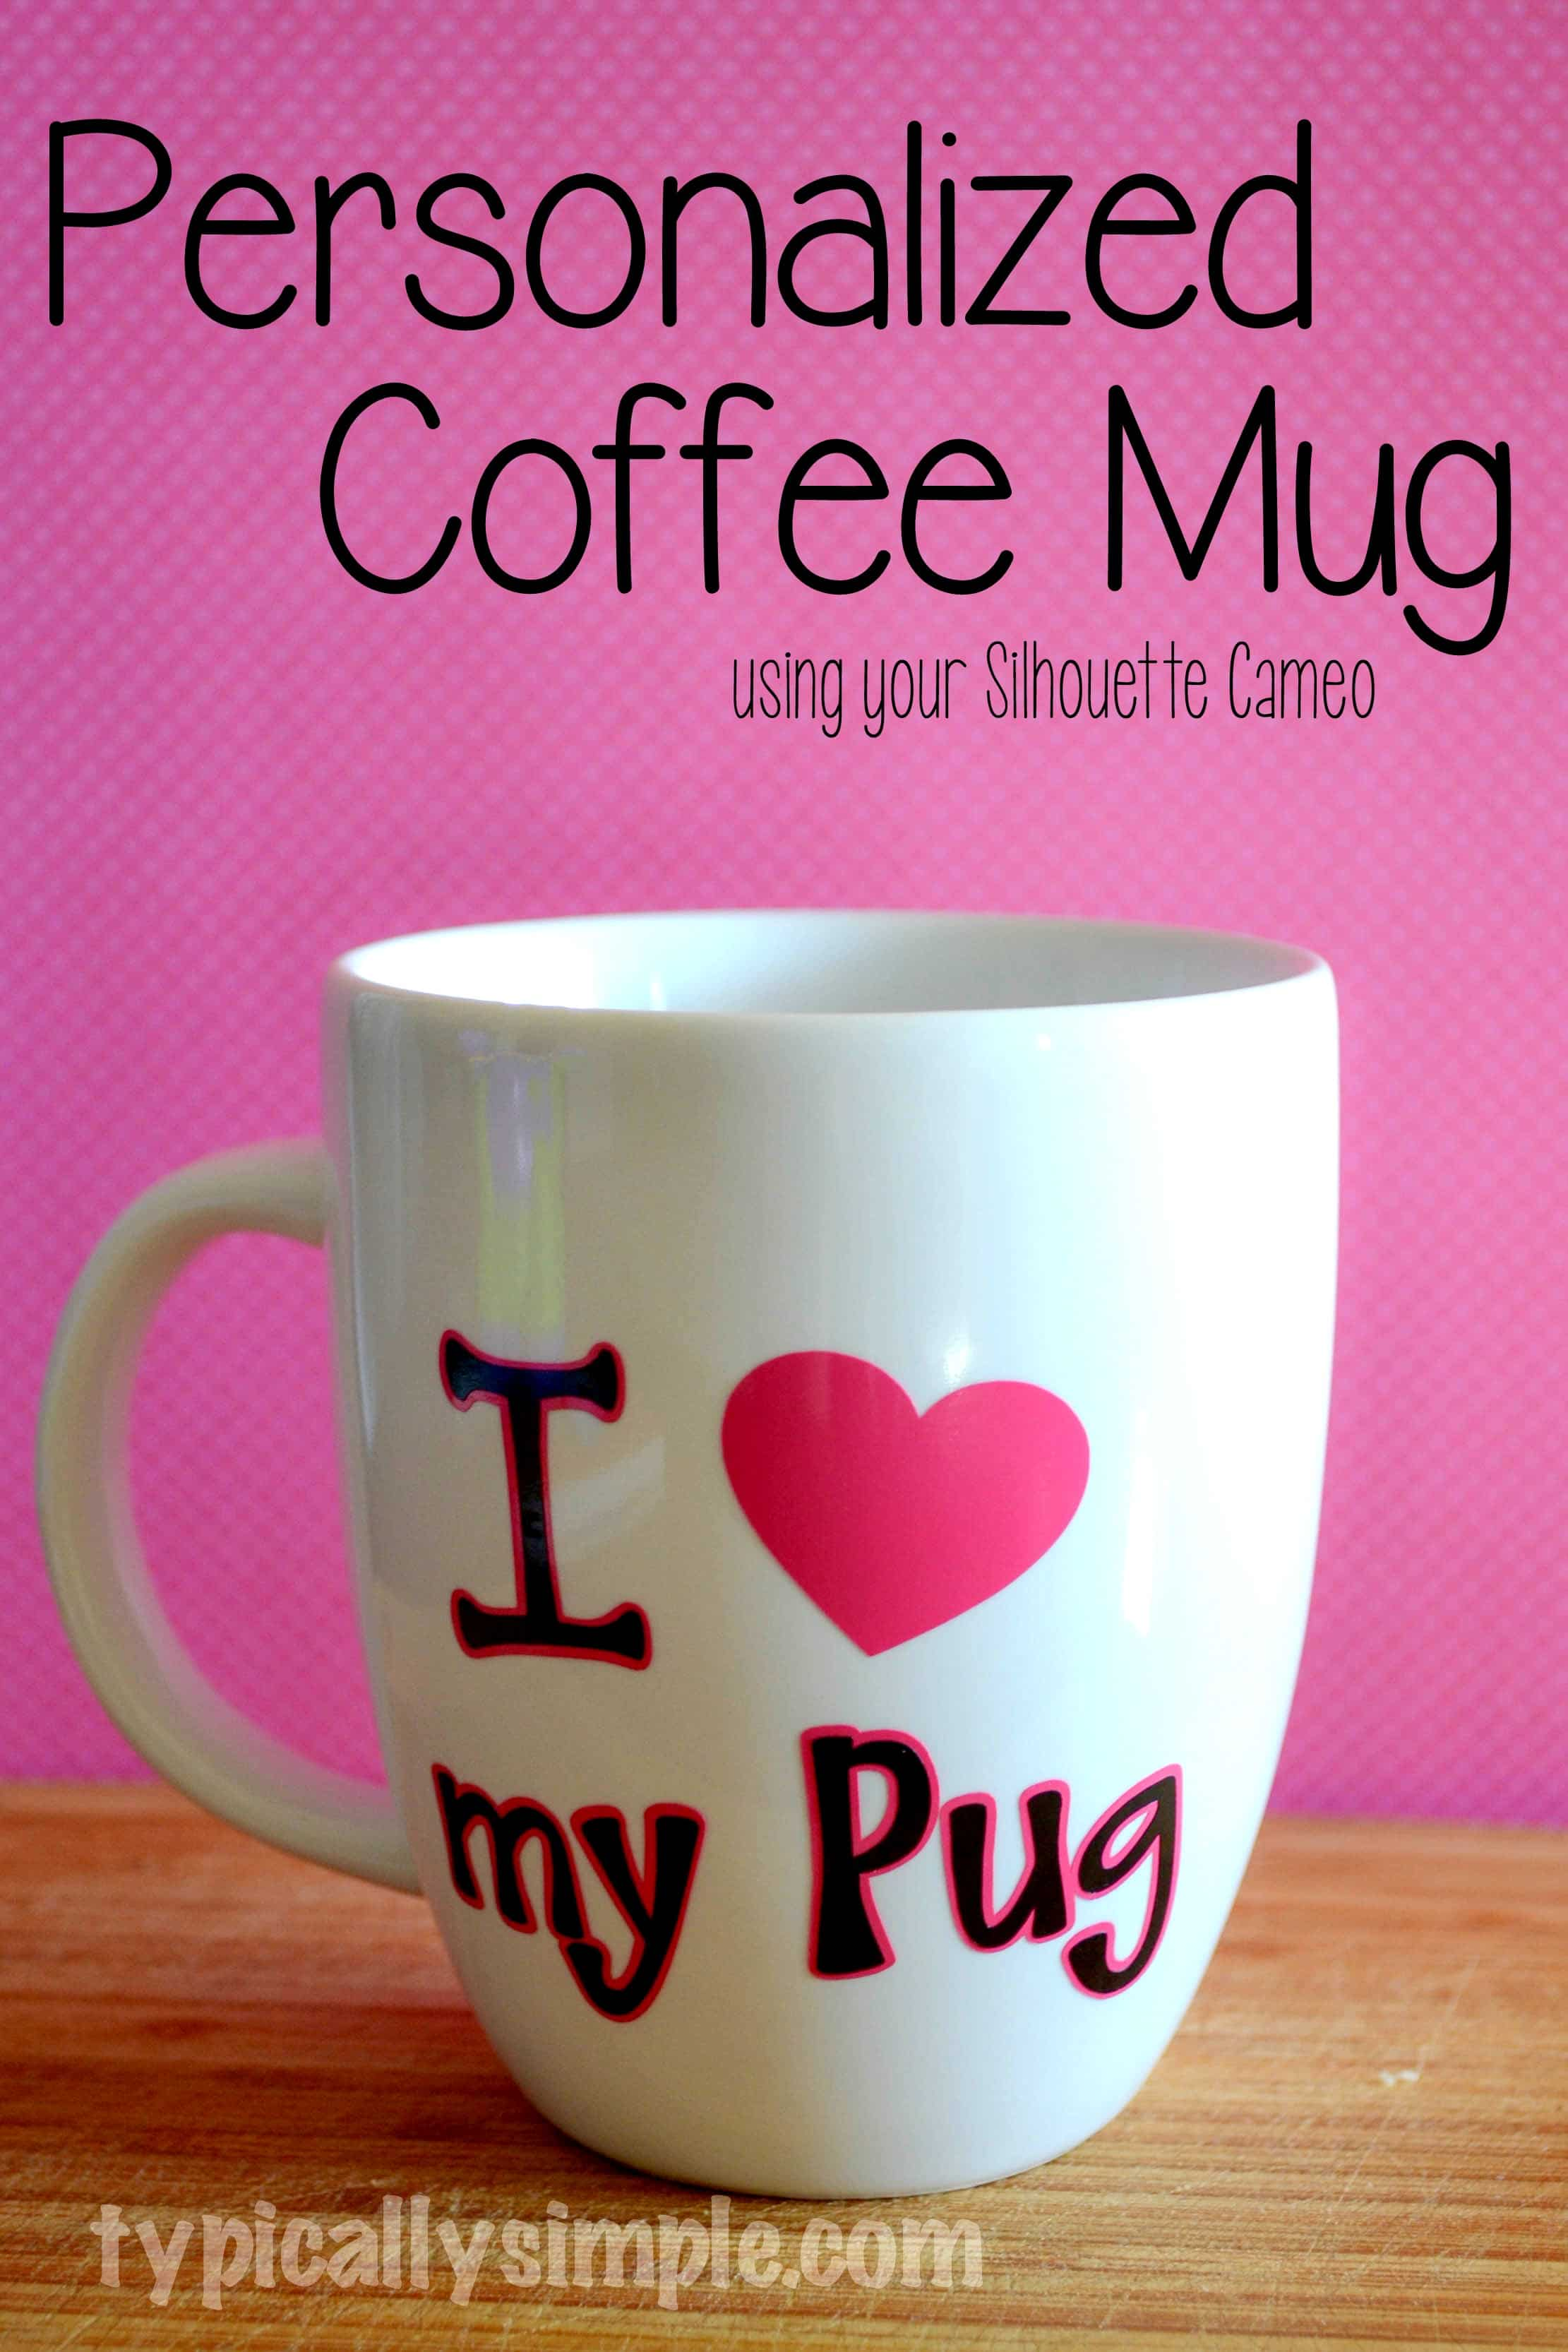 Enchanting Use Your Silhouette Cameo To Create A Personalized Mug Using Vinyl A Personalized Mug Using Silhouette Cameo Typically Cup Coffee French Press Black Coffee Cup furniture The Perfect Coffee Cup